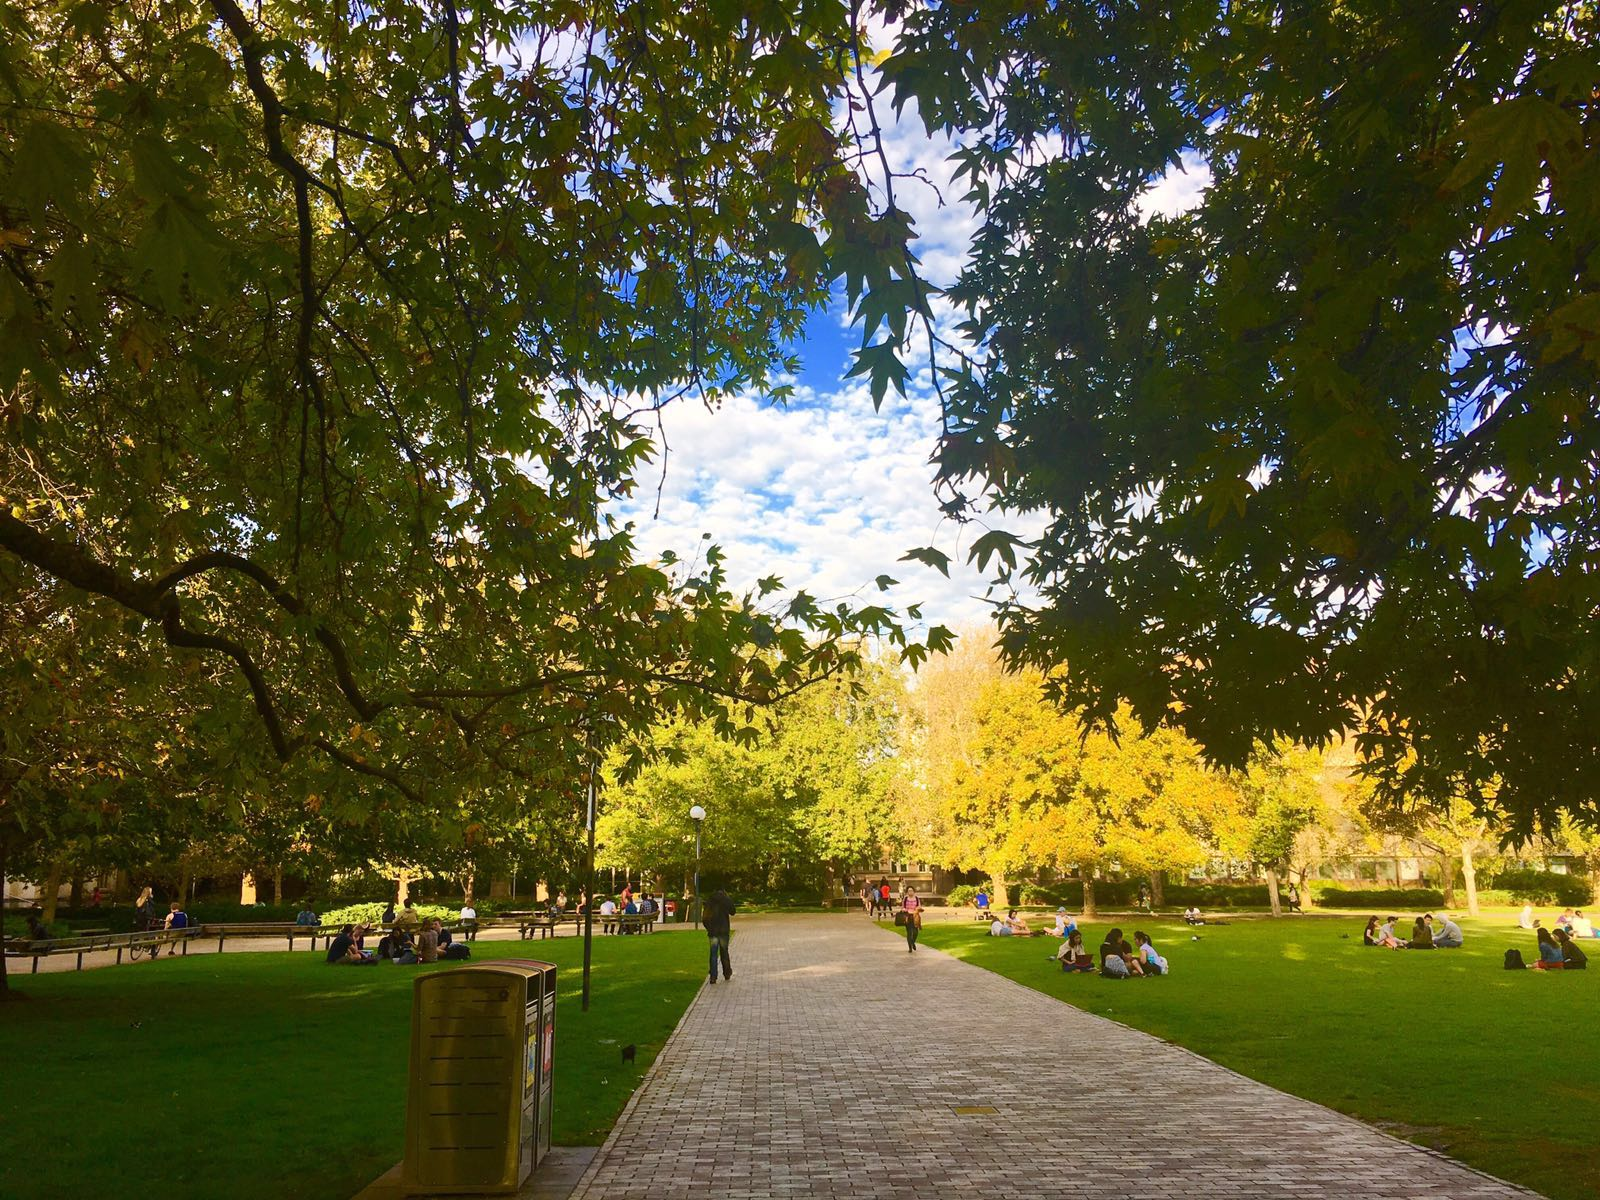 South Lawn, the University of Melbourne